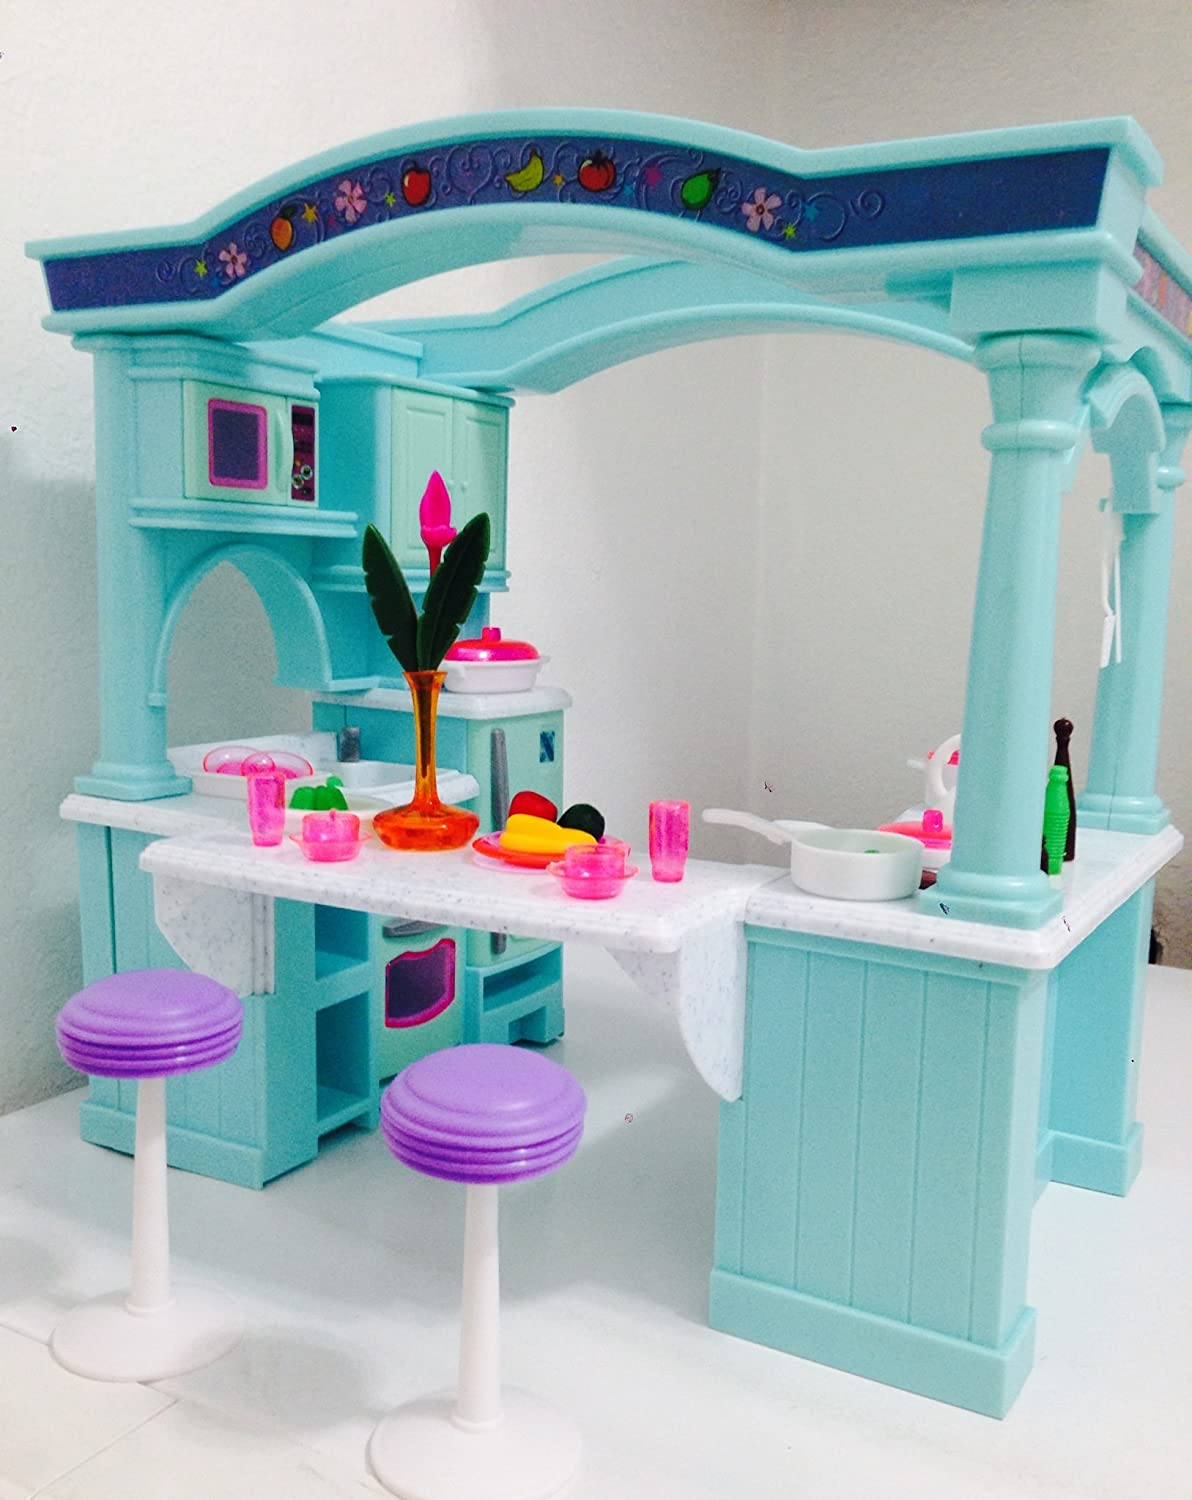 Dollhouse Doll Furniture Barbie Size Room Playset Toy